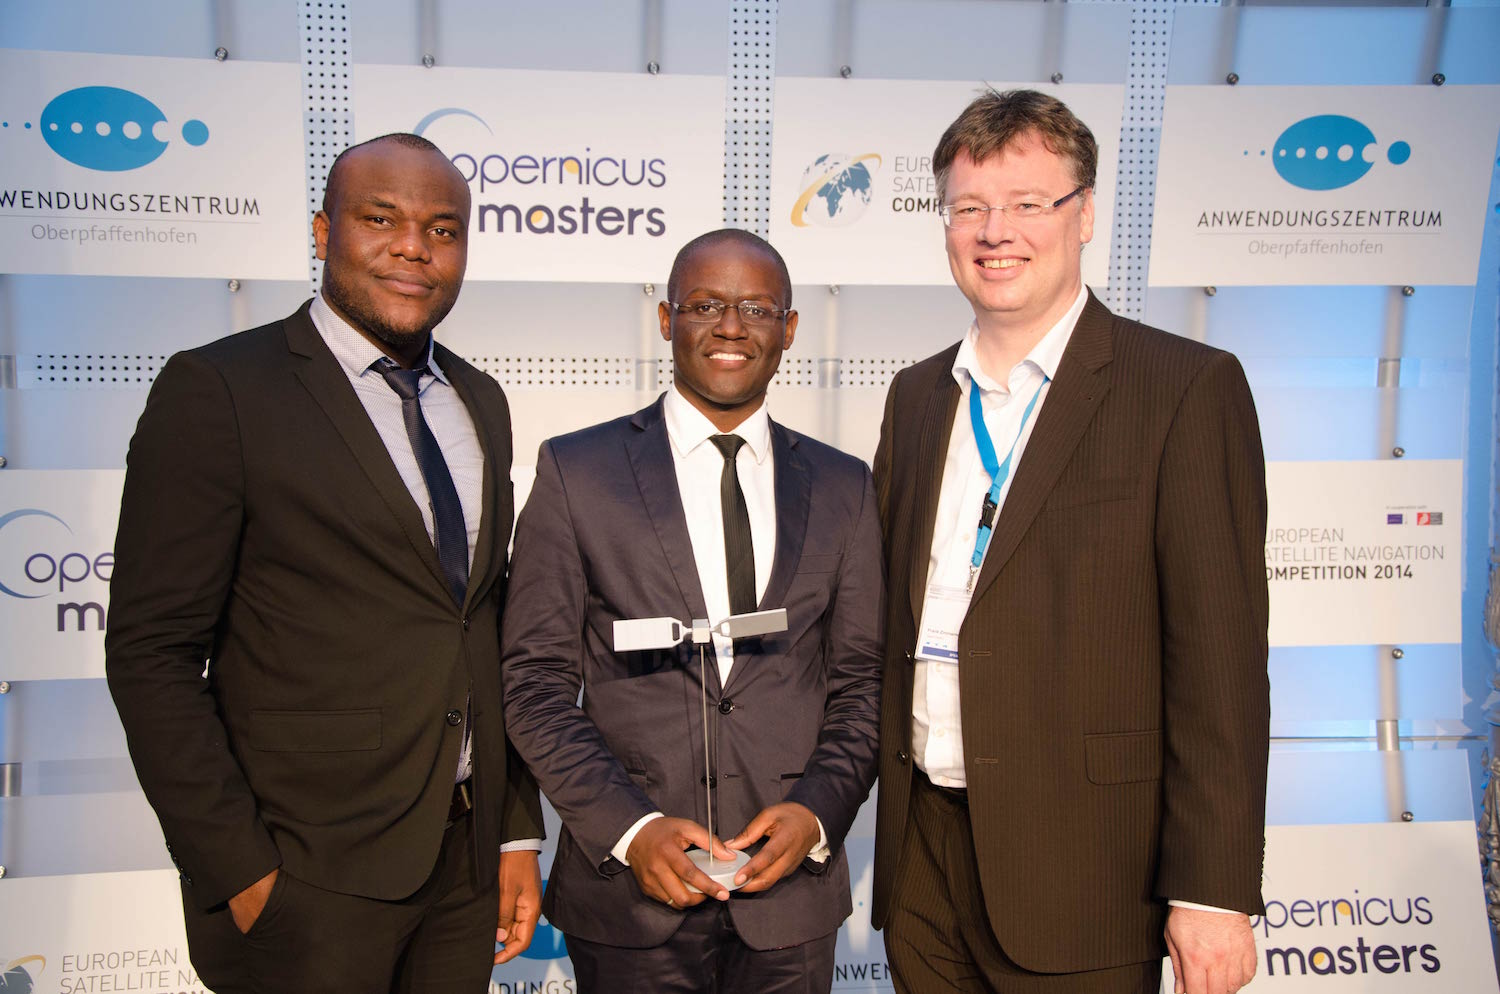 Soule Nkepseu - Cofounder & CTO SkyDesk Systems, Steve Odhiambo - Founder & CEO SkyDesk Systems, DR. Frank Zimmermann - Managing Director Cesah Darmstadt